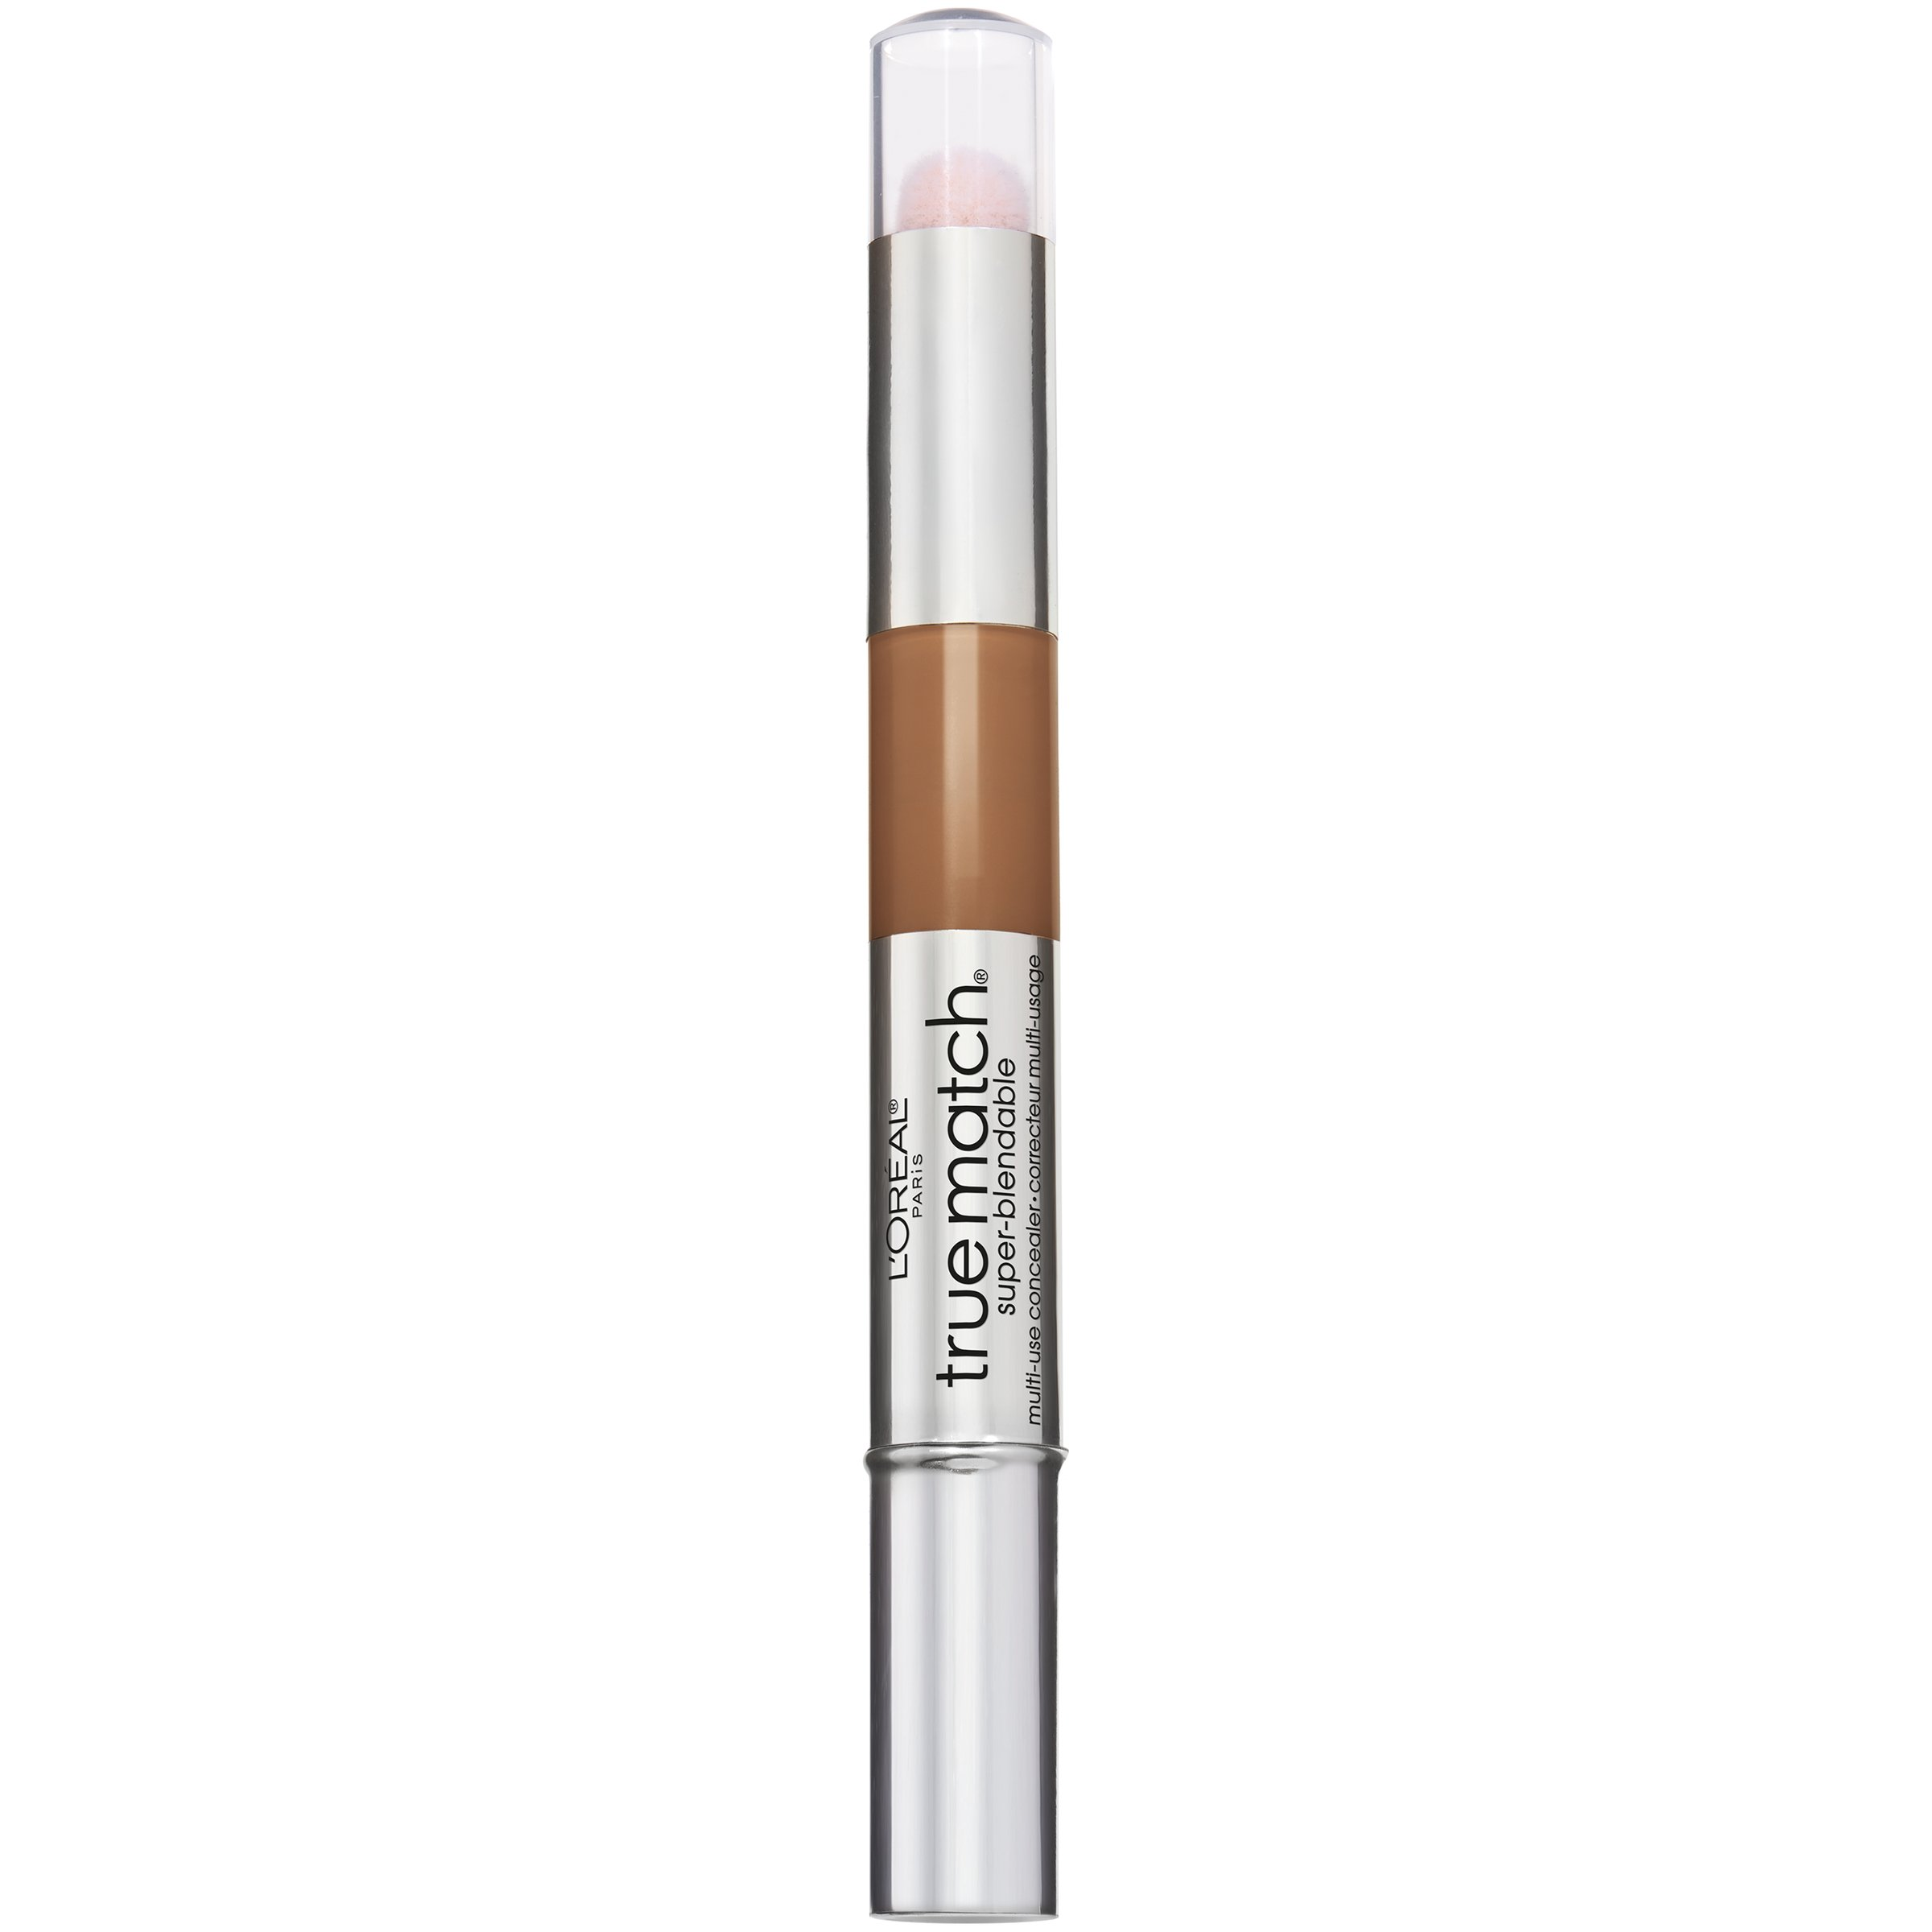 L'Oreal Paris Cosmetics True Match Super-Blendable Multi-Use Concealer Makeup, Dark C7-8, 0.05 Fluid Ounce